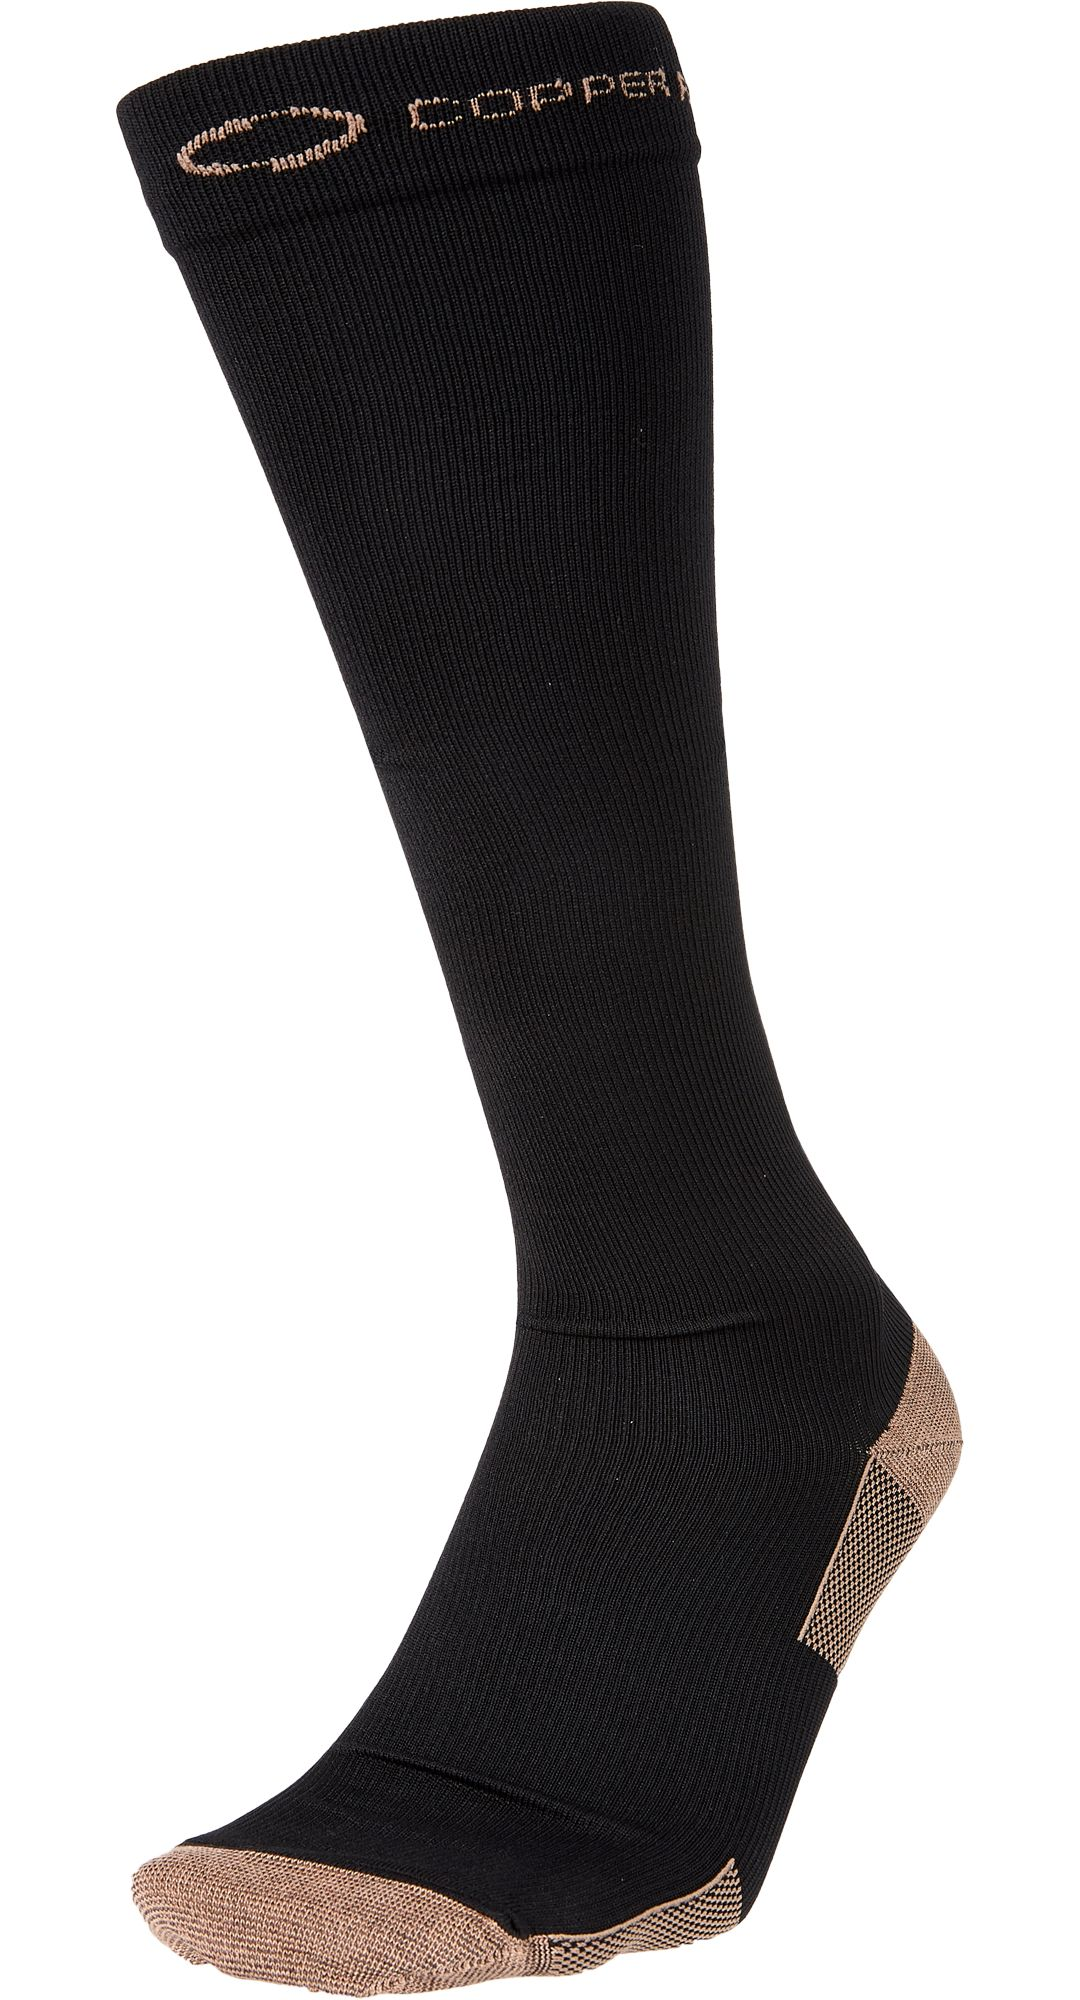 8d17fbe588688a Copper Fit Pro Energy Compression Socks. noImageFound. Previous. 1. 2